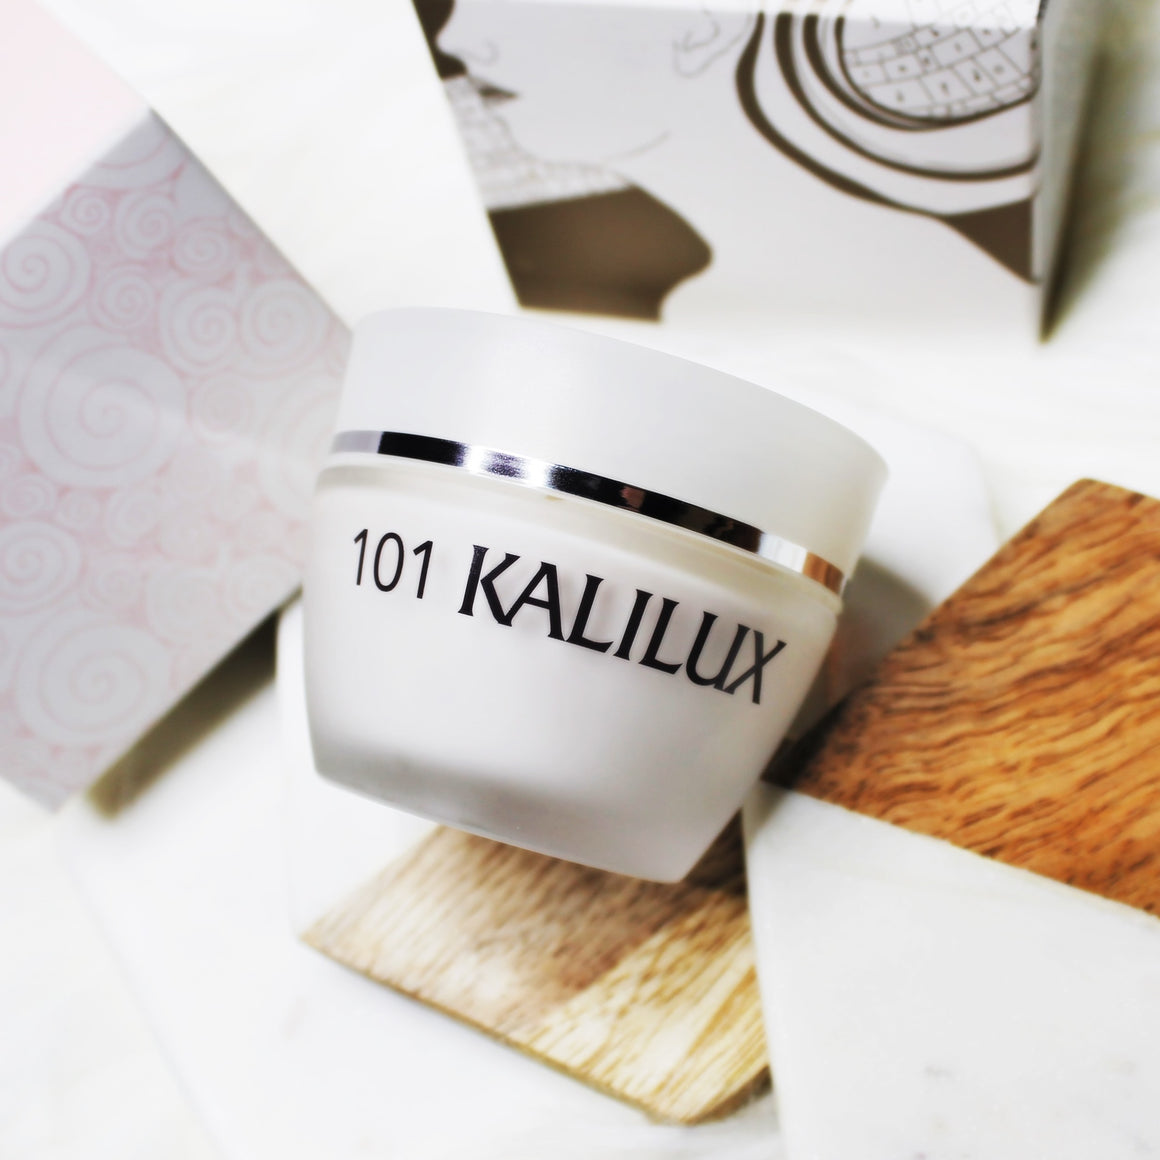 Kalilux is an advanced, lightweight moisturizer that renews and delivers all-day hydration for a dewy, smooth finish. Alpha hydroxy acids reduce the appearance of fine lines and pores, while fruit extracts refine skin's texture and support natural microcirculation for a re-energized, healthy-looking glow that lasts all day.